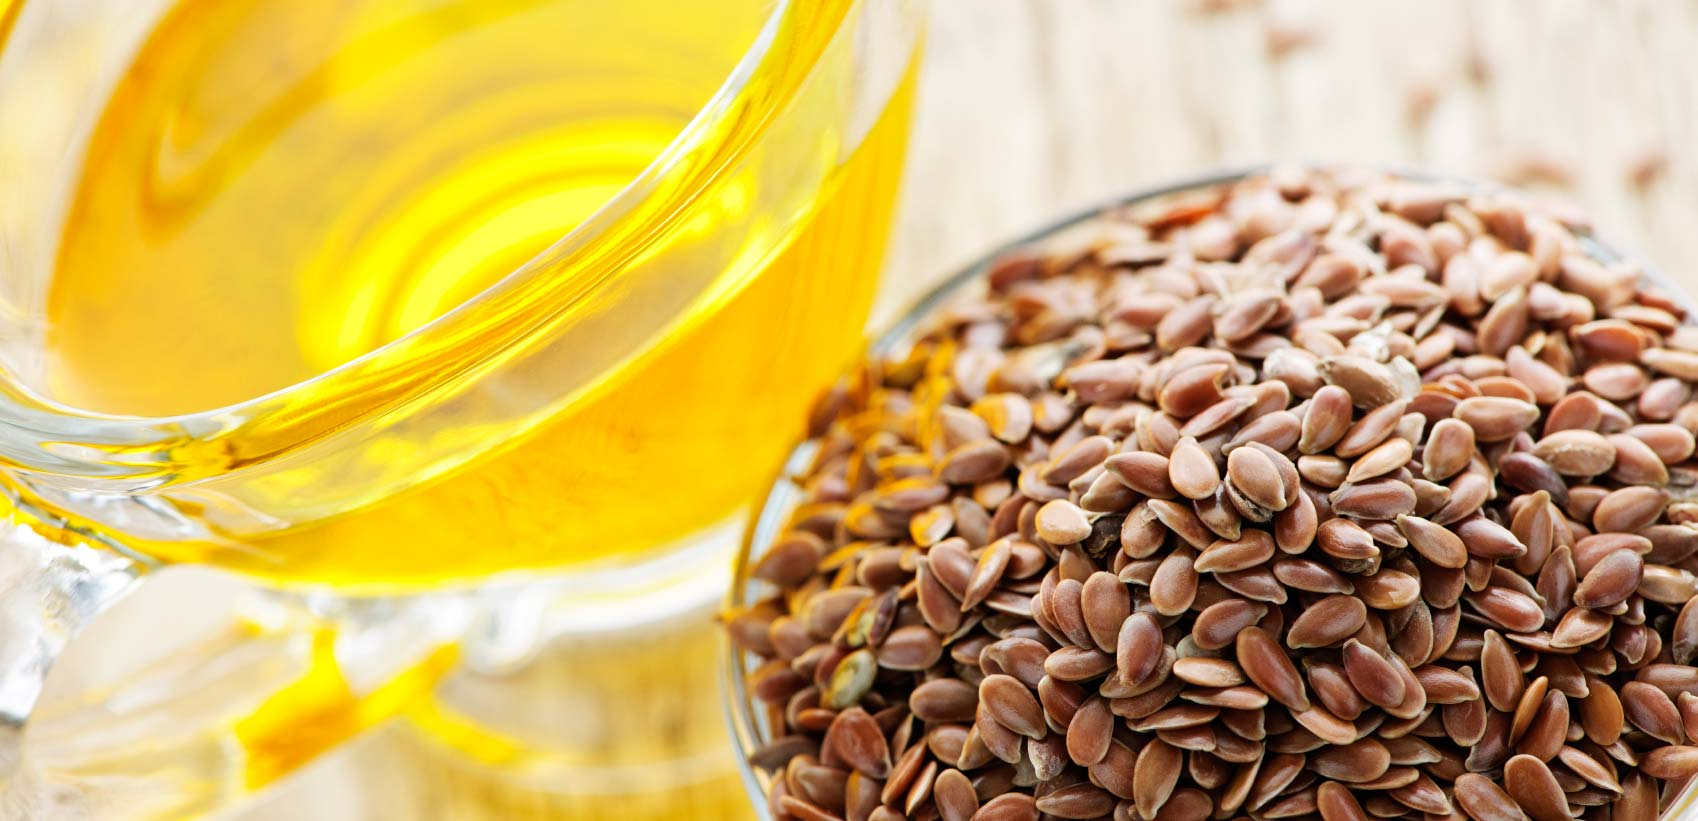 Benefits-of-Flax-Seed-Flax-Seed-Oil-